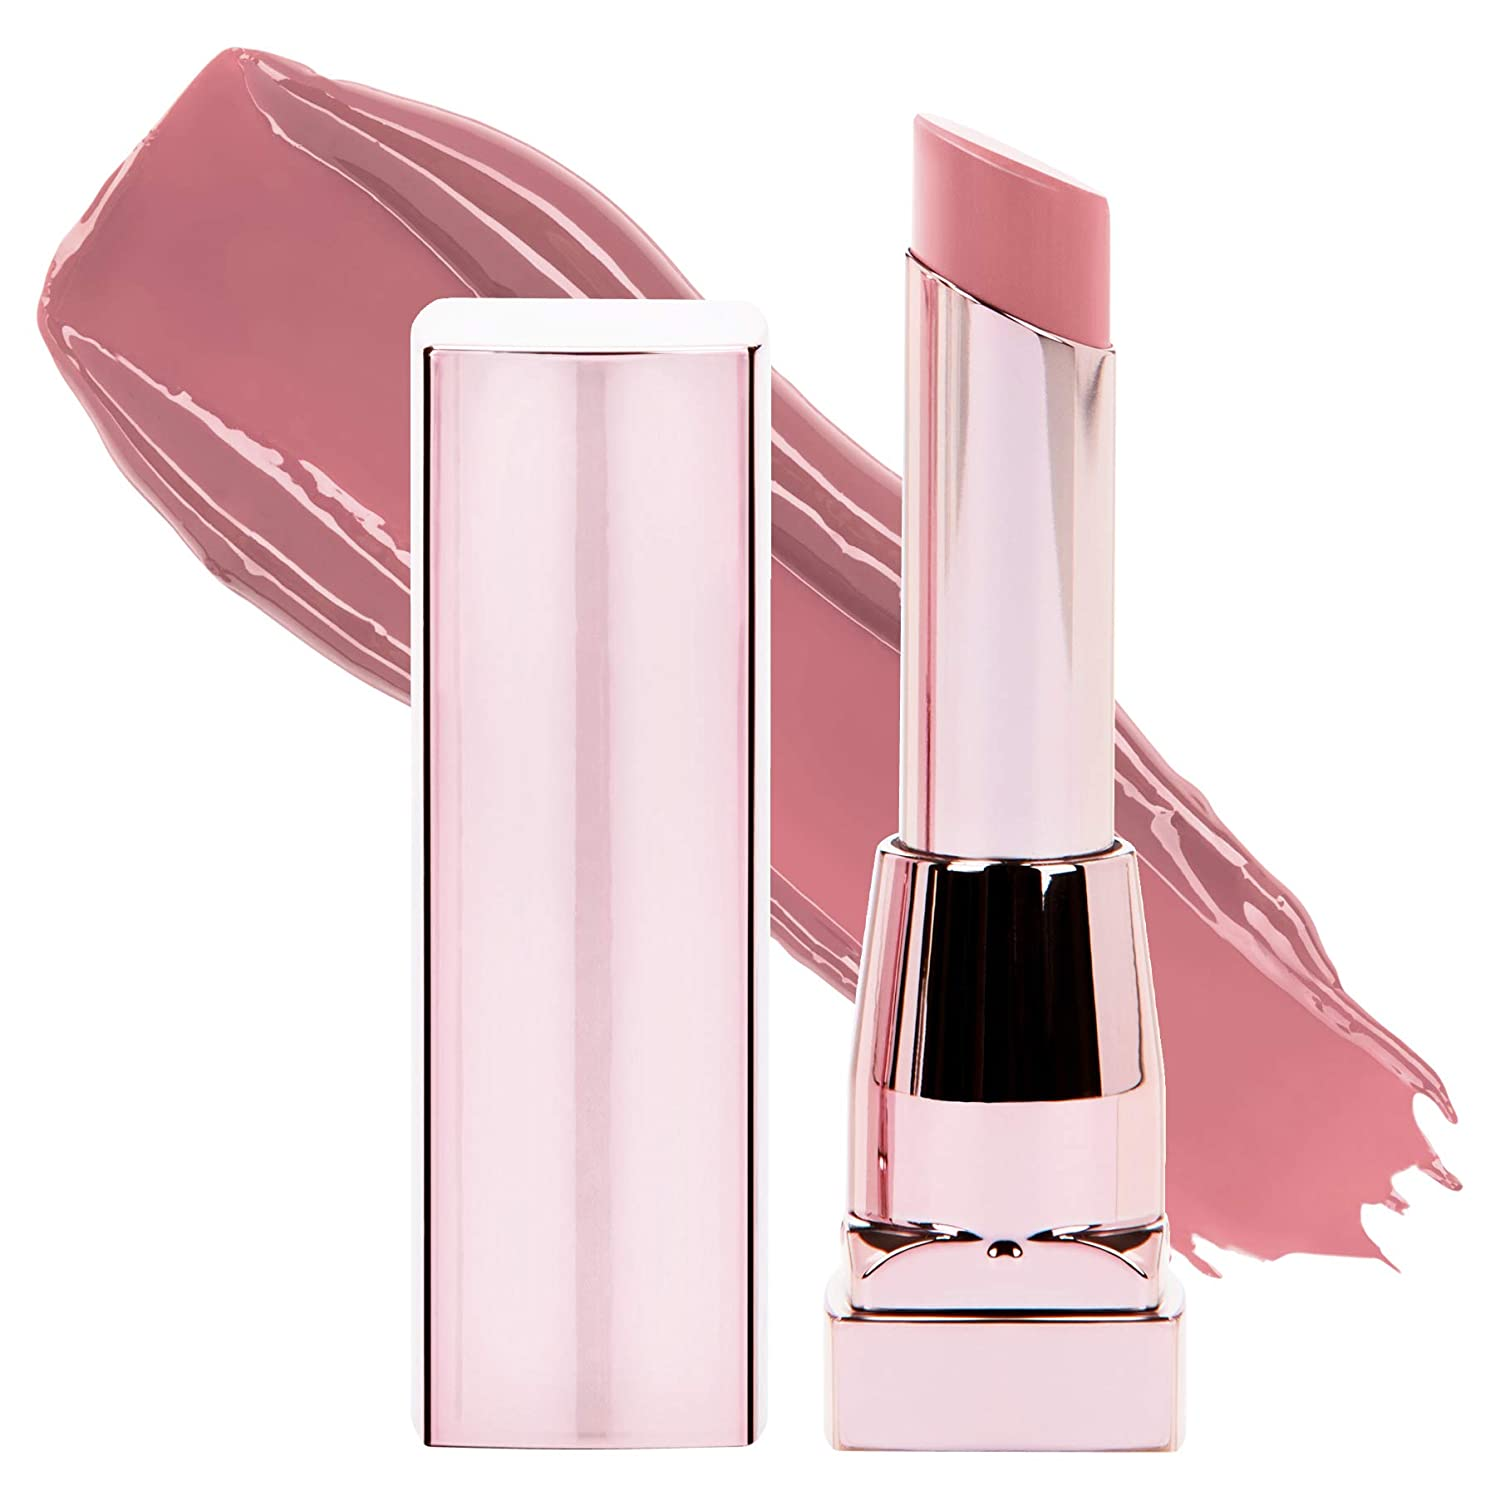 Maybelline New York Color Sensational Shine Compulsion Lipstick Makeup, Undressed Pink, 0.1 Ounce